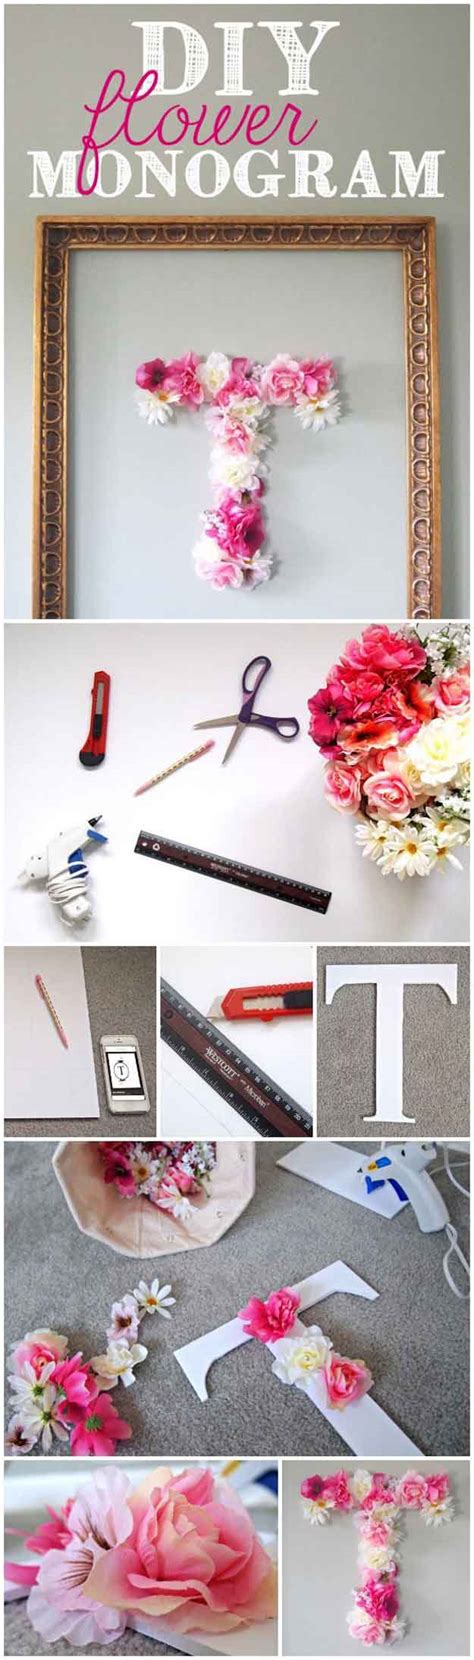 diy bedroom decorations 37 insanely cute teen bedroom ideas for diy decor crafts